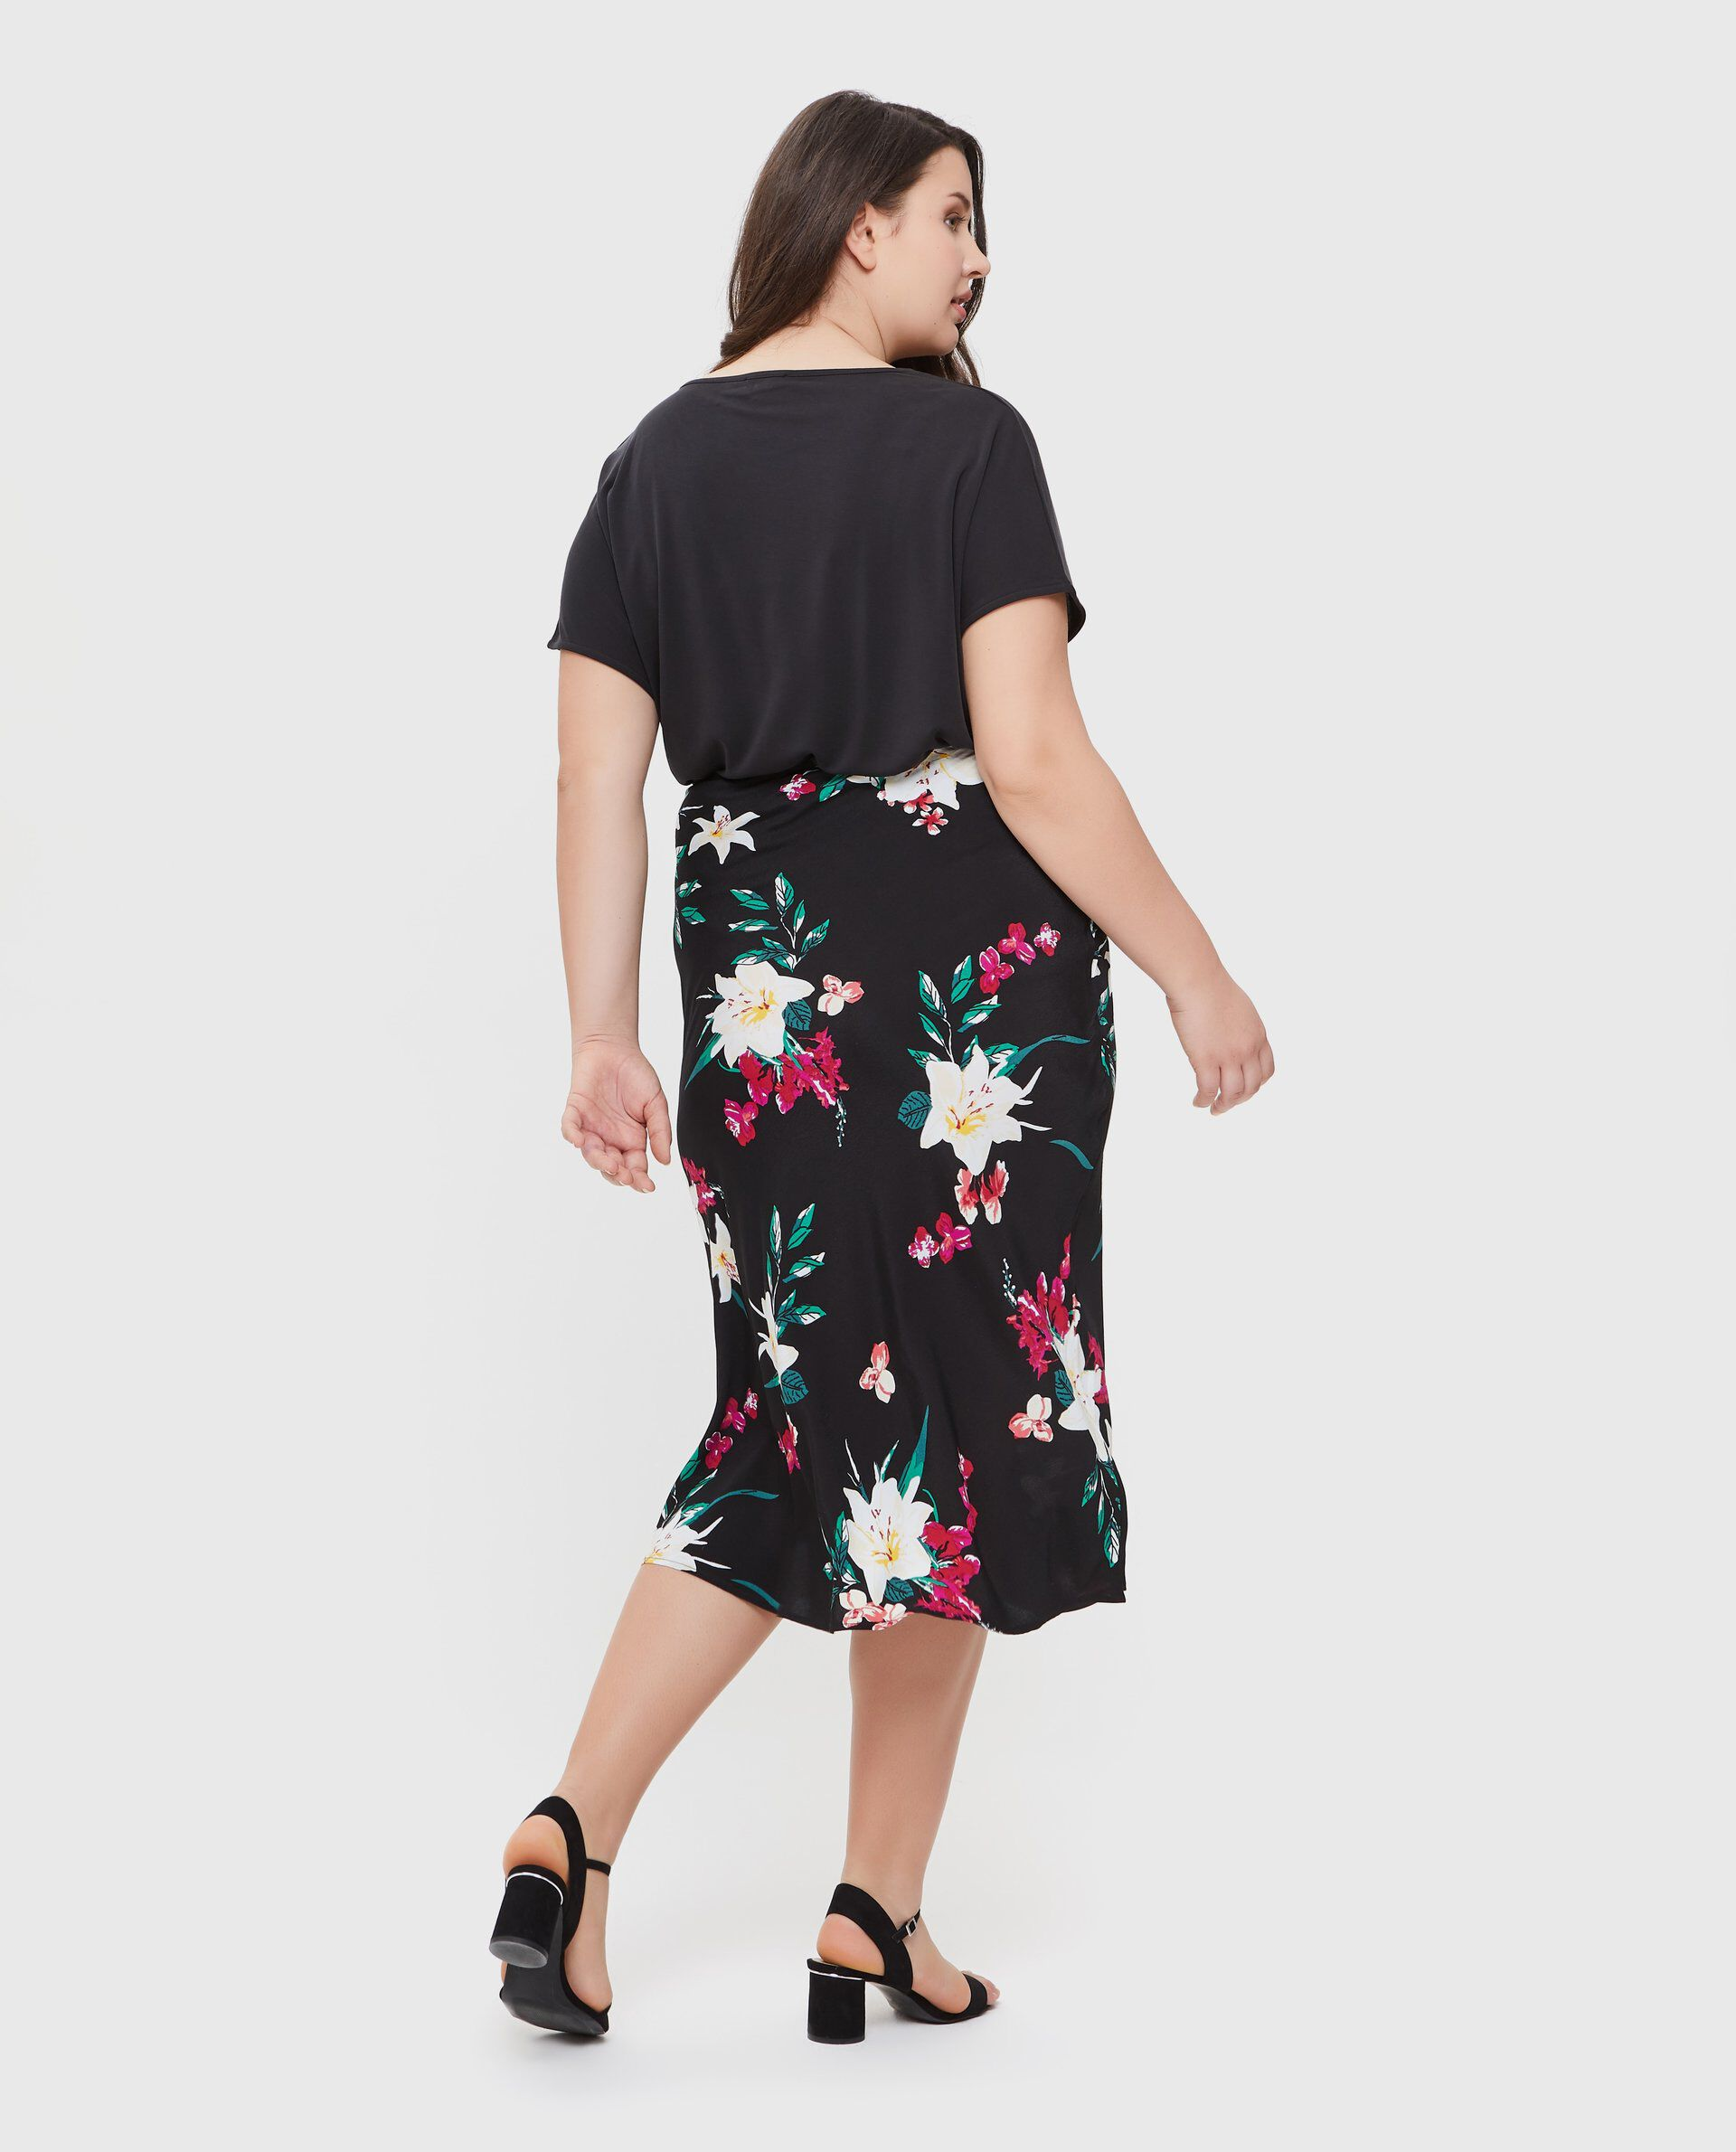 Gonna in pura viscosa con fantasia floreale Curvy donna